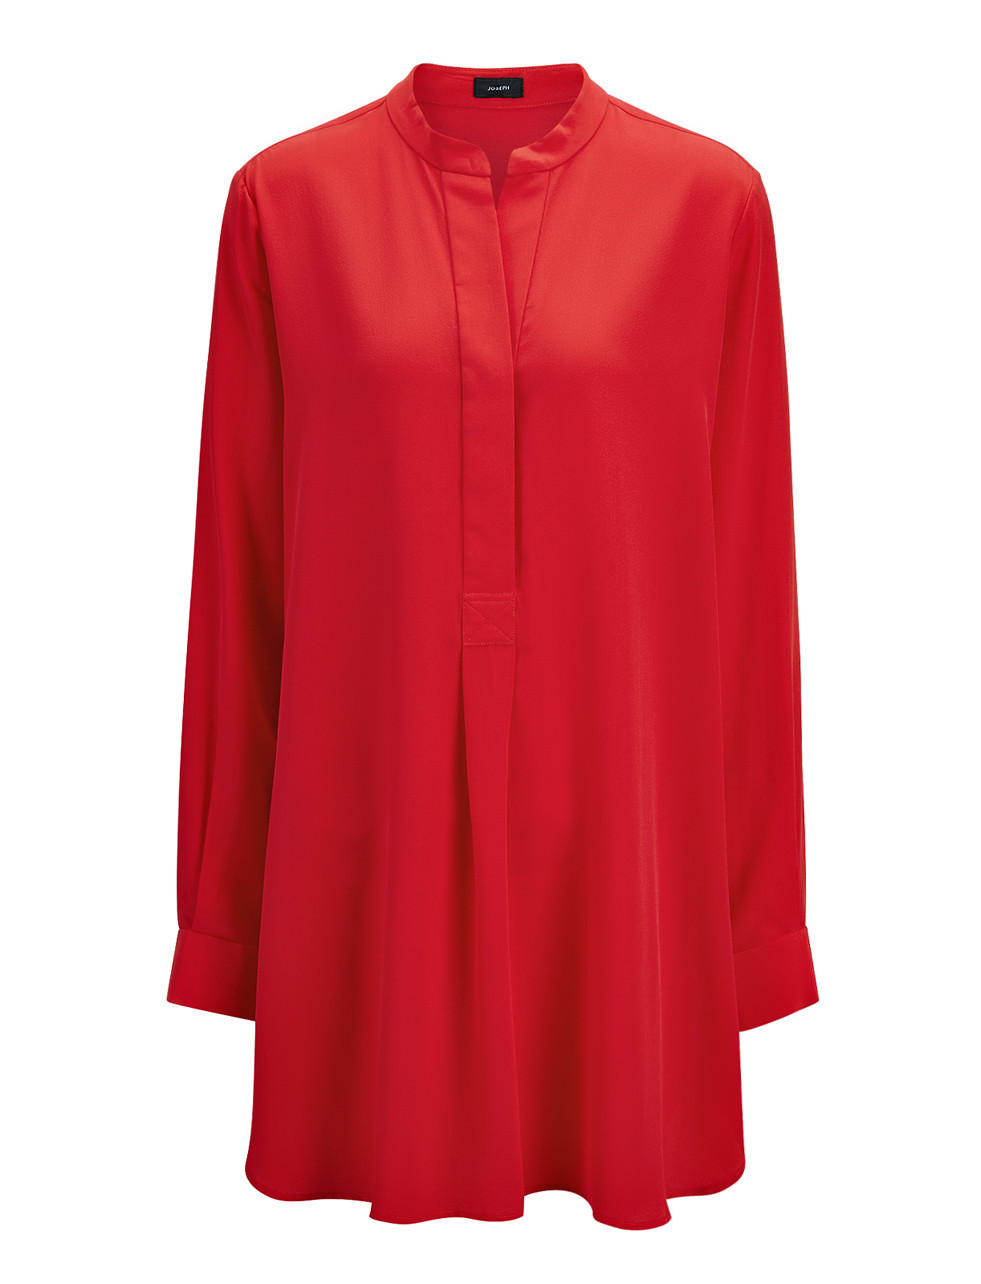 Crepe De Chine Dara Blouse In Red - pattern: plain; length: below the bottom; style: blouse; predominant colour: true red; occasions: evening; neckline: collarstand & mandarin with v-neck; fibres: silk - 100%; fit: loose; sleeve length: long sleeve; sleeve style: standard; texture group: crepes; pattern type: fabric; season: s/s 2016